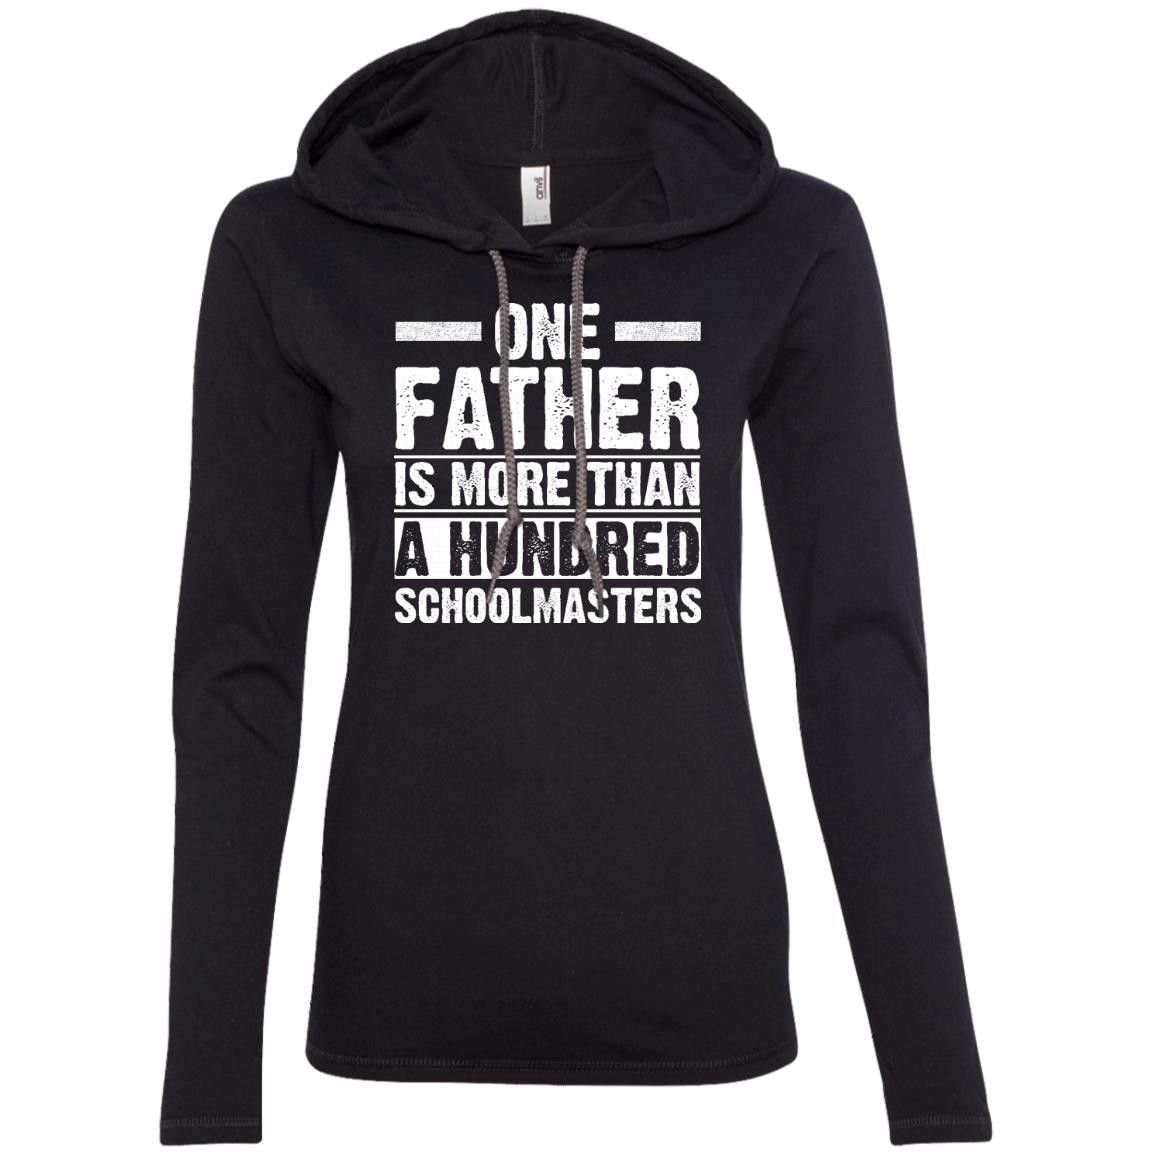 one father is more than a hundred schoolmasters 887L Anvil Ladies' LS T-Shirt Hoodie